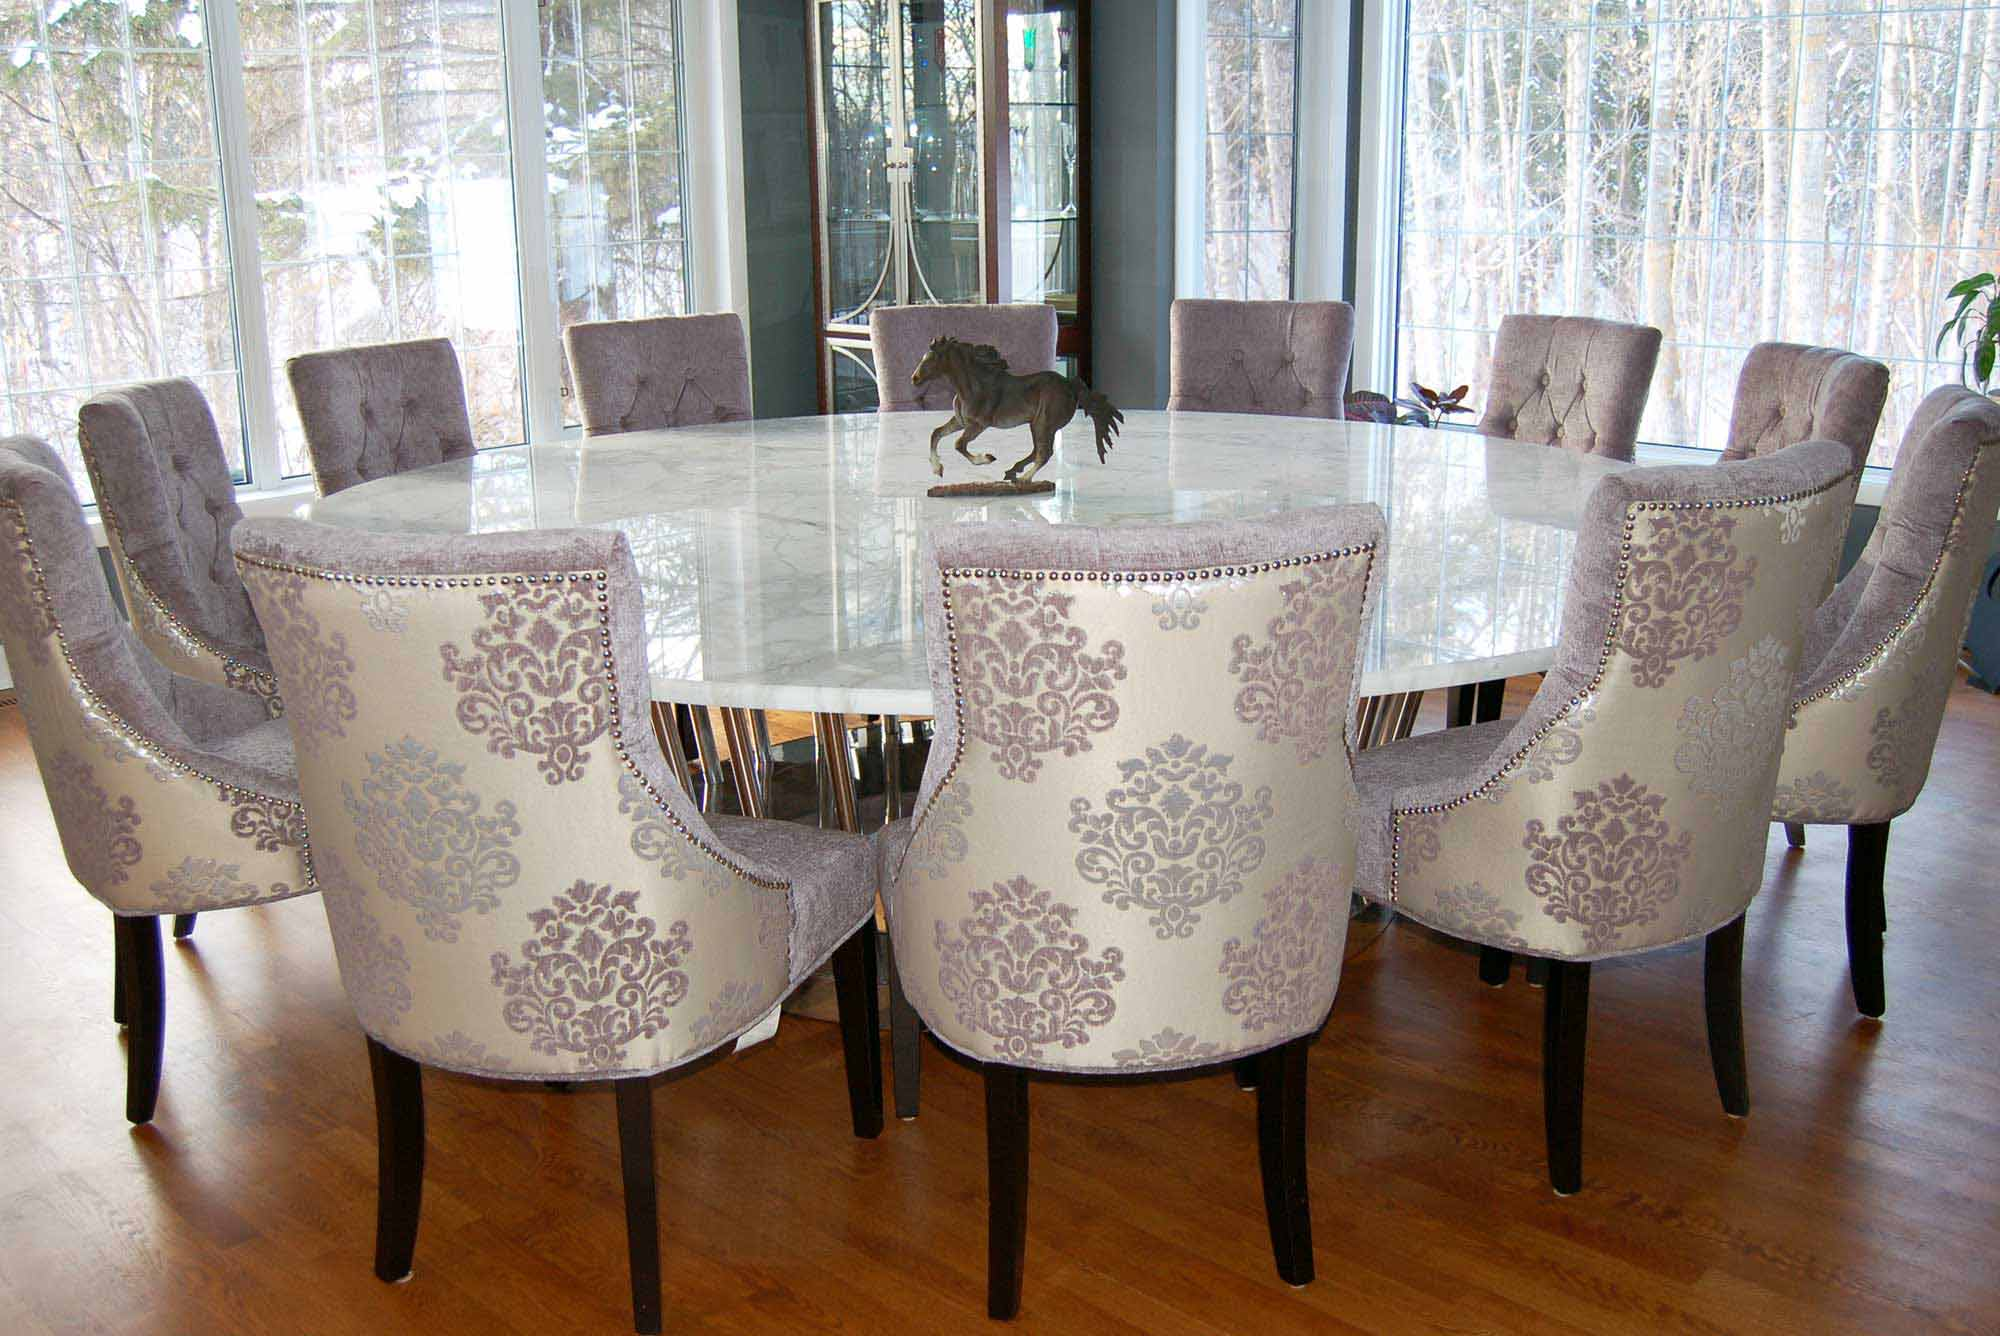 12 Person Dining Table: Designs and Benefits | HomesFeed